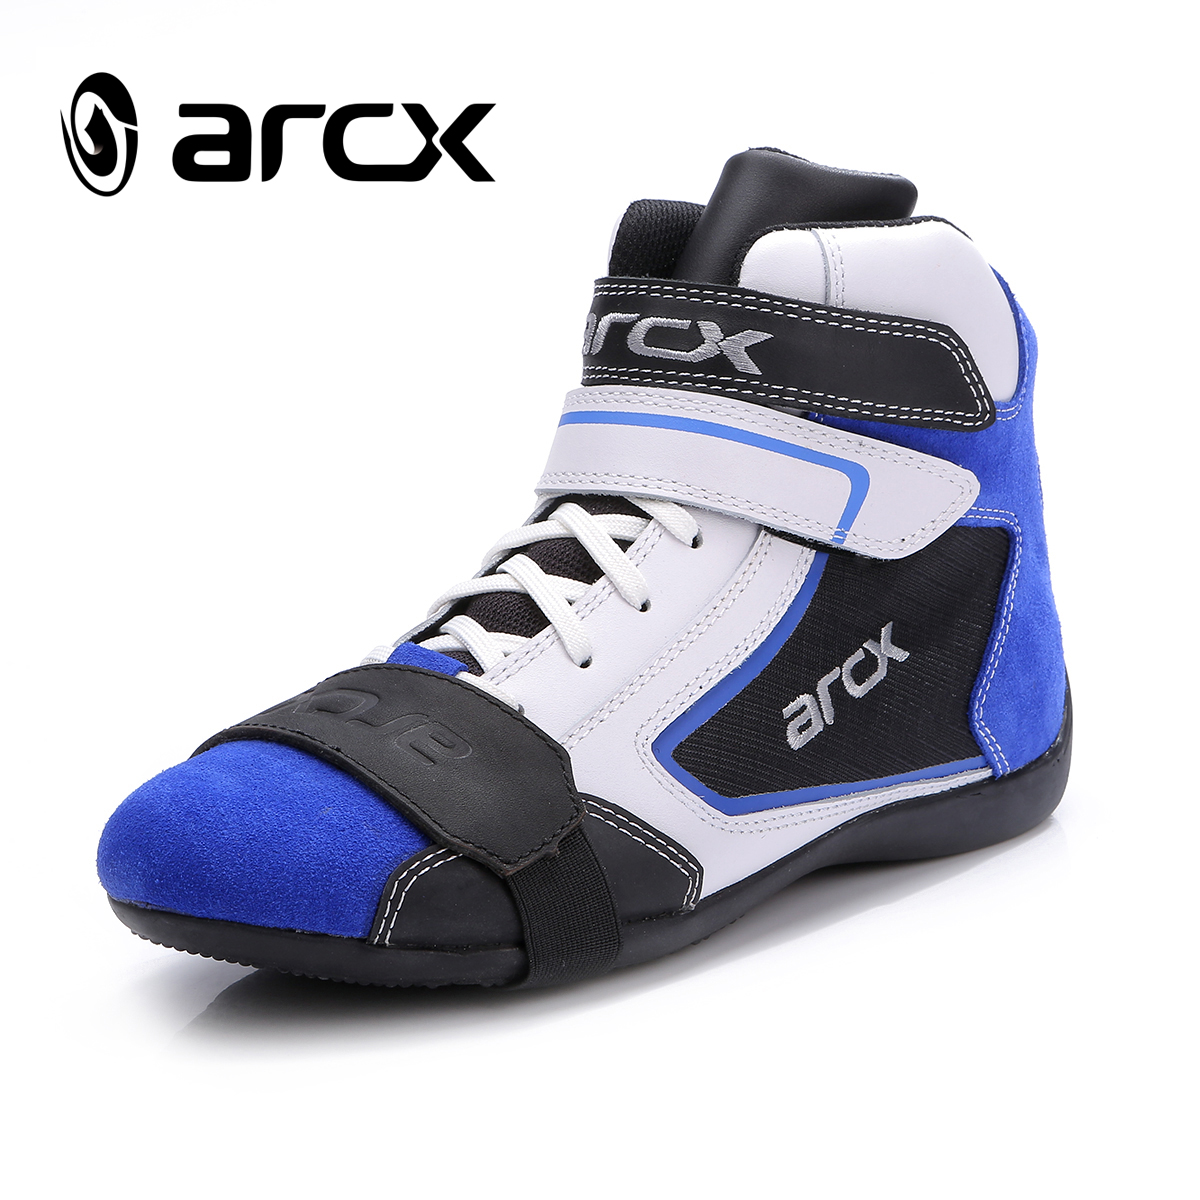 купить Arcx leather outdoor motorcycle shoes men's racing shoes protect shoes breathable moto shoes по цене 4181.85 рублей